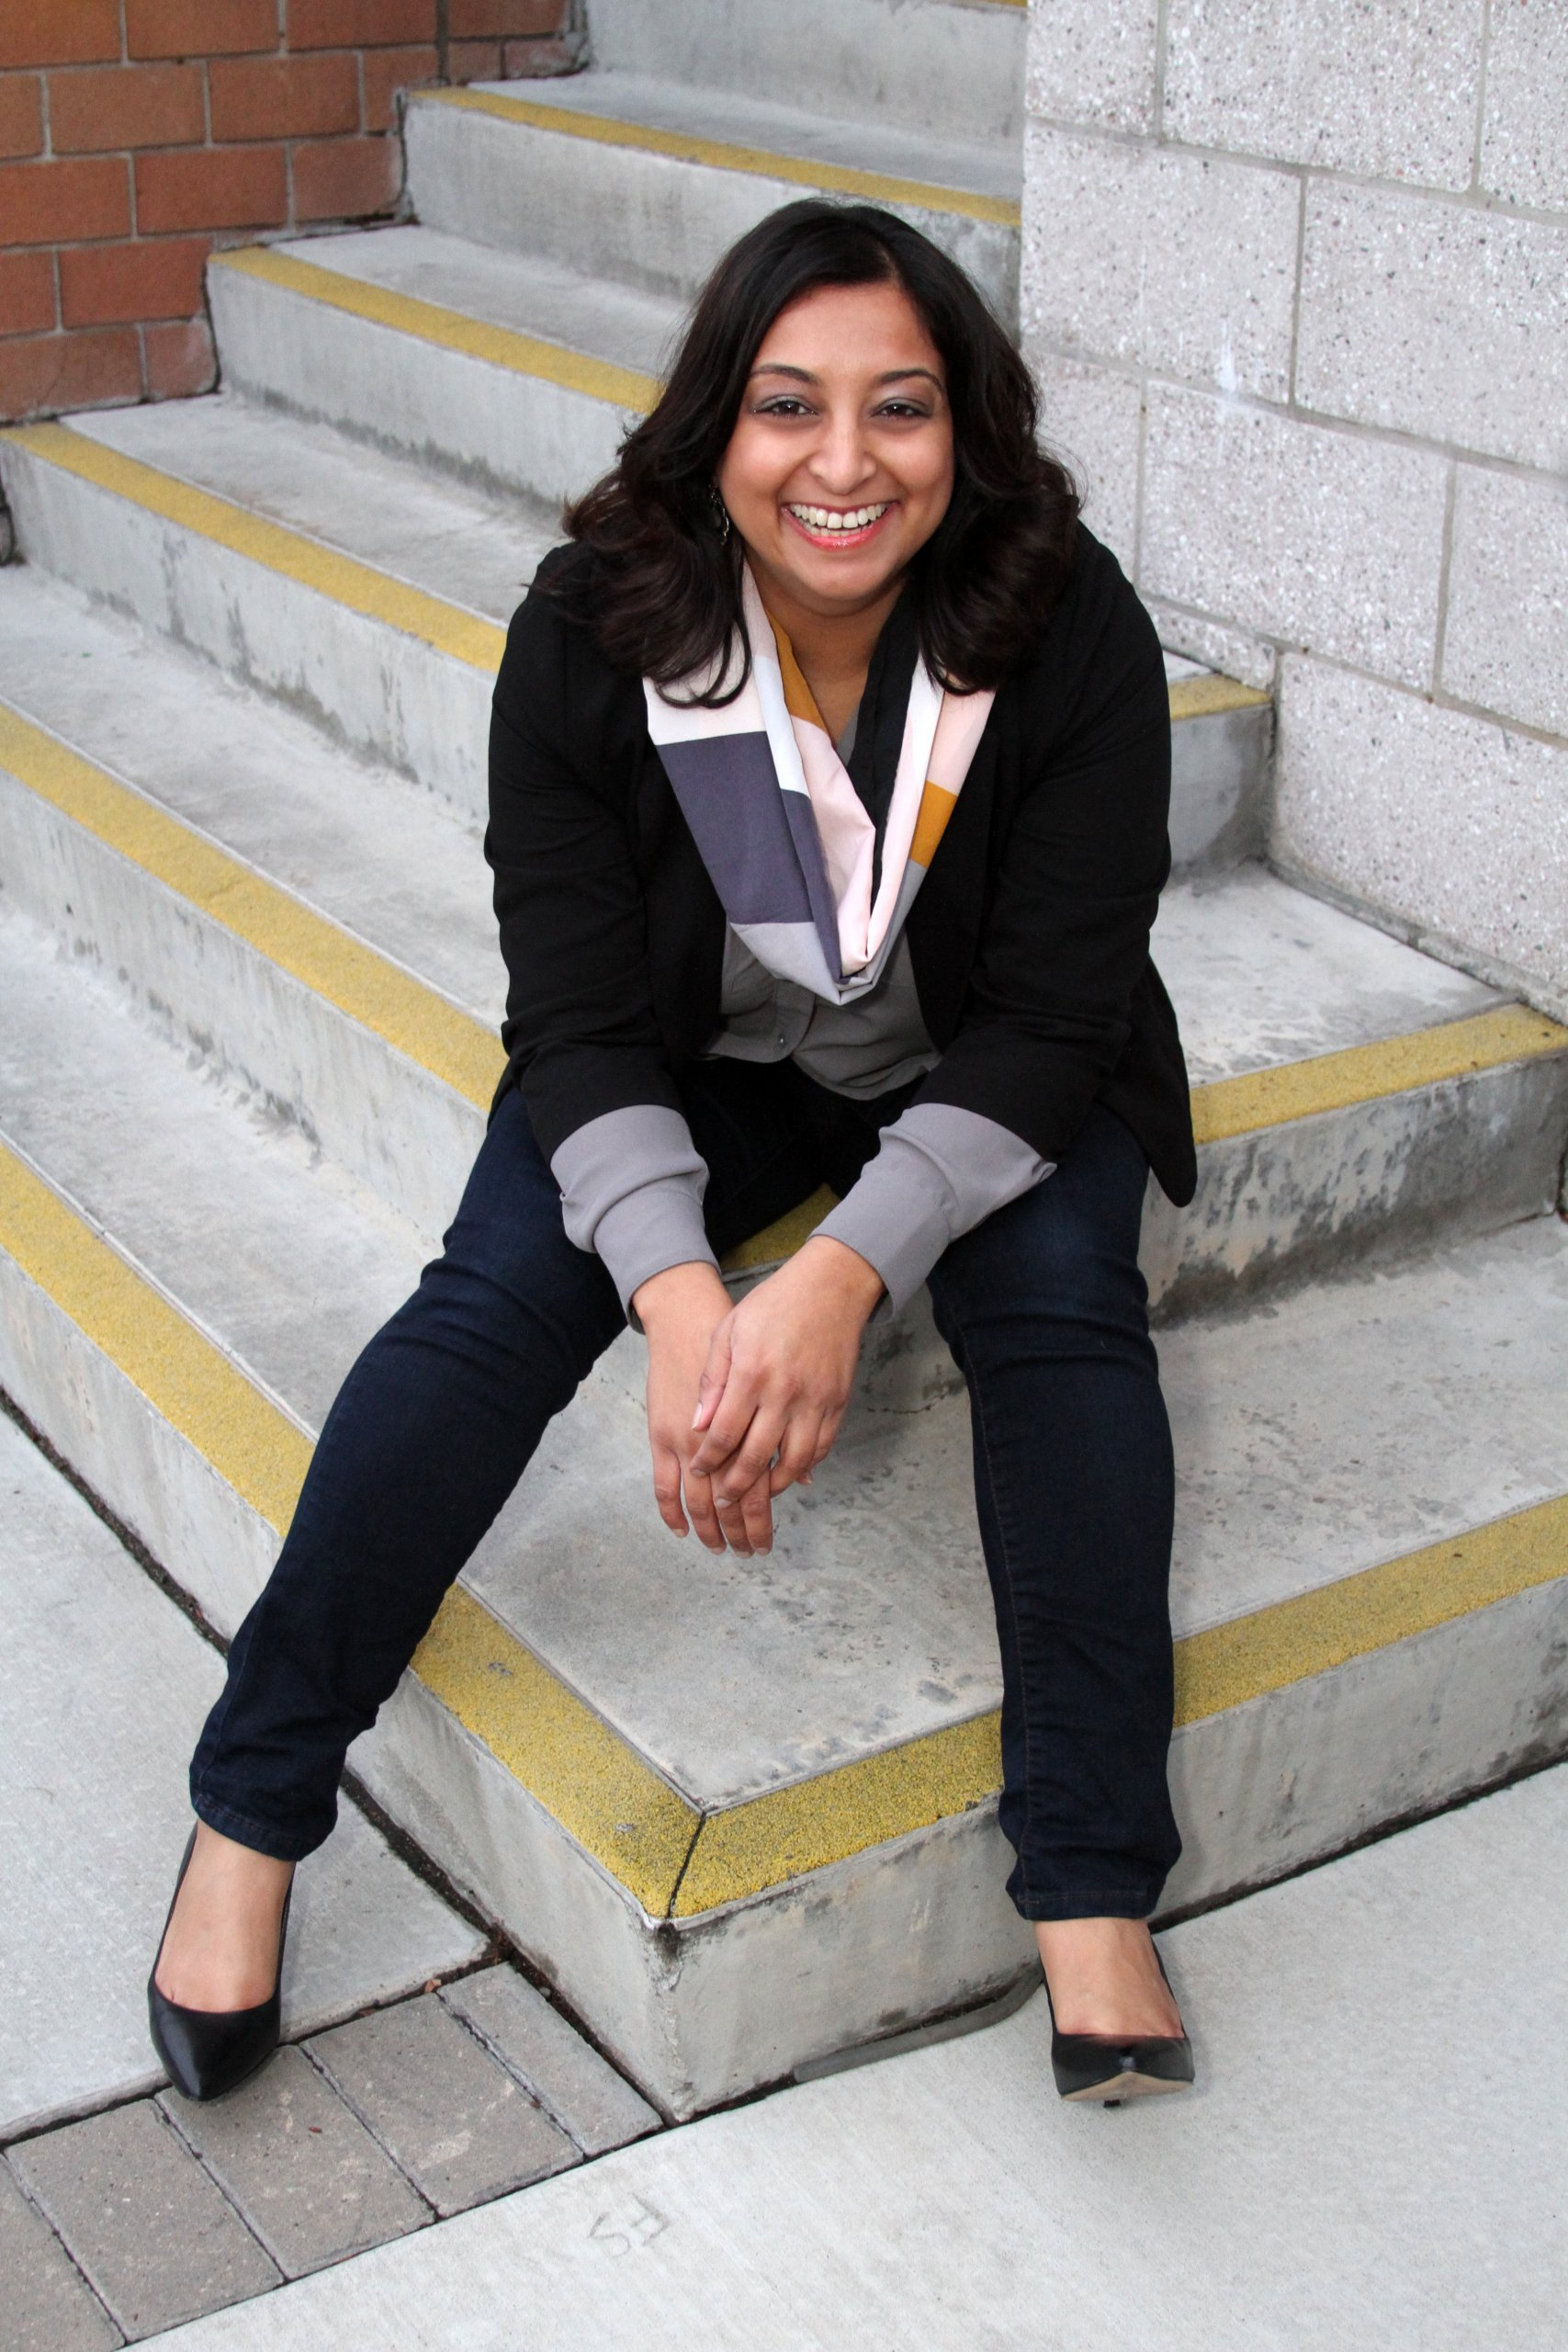 Sejal Parekh, Home Stager and Founder of Innovae Designs